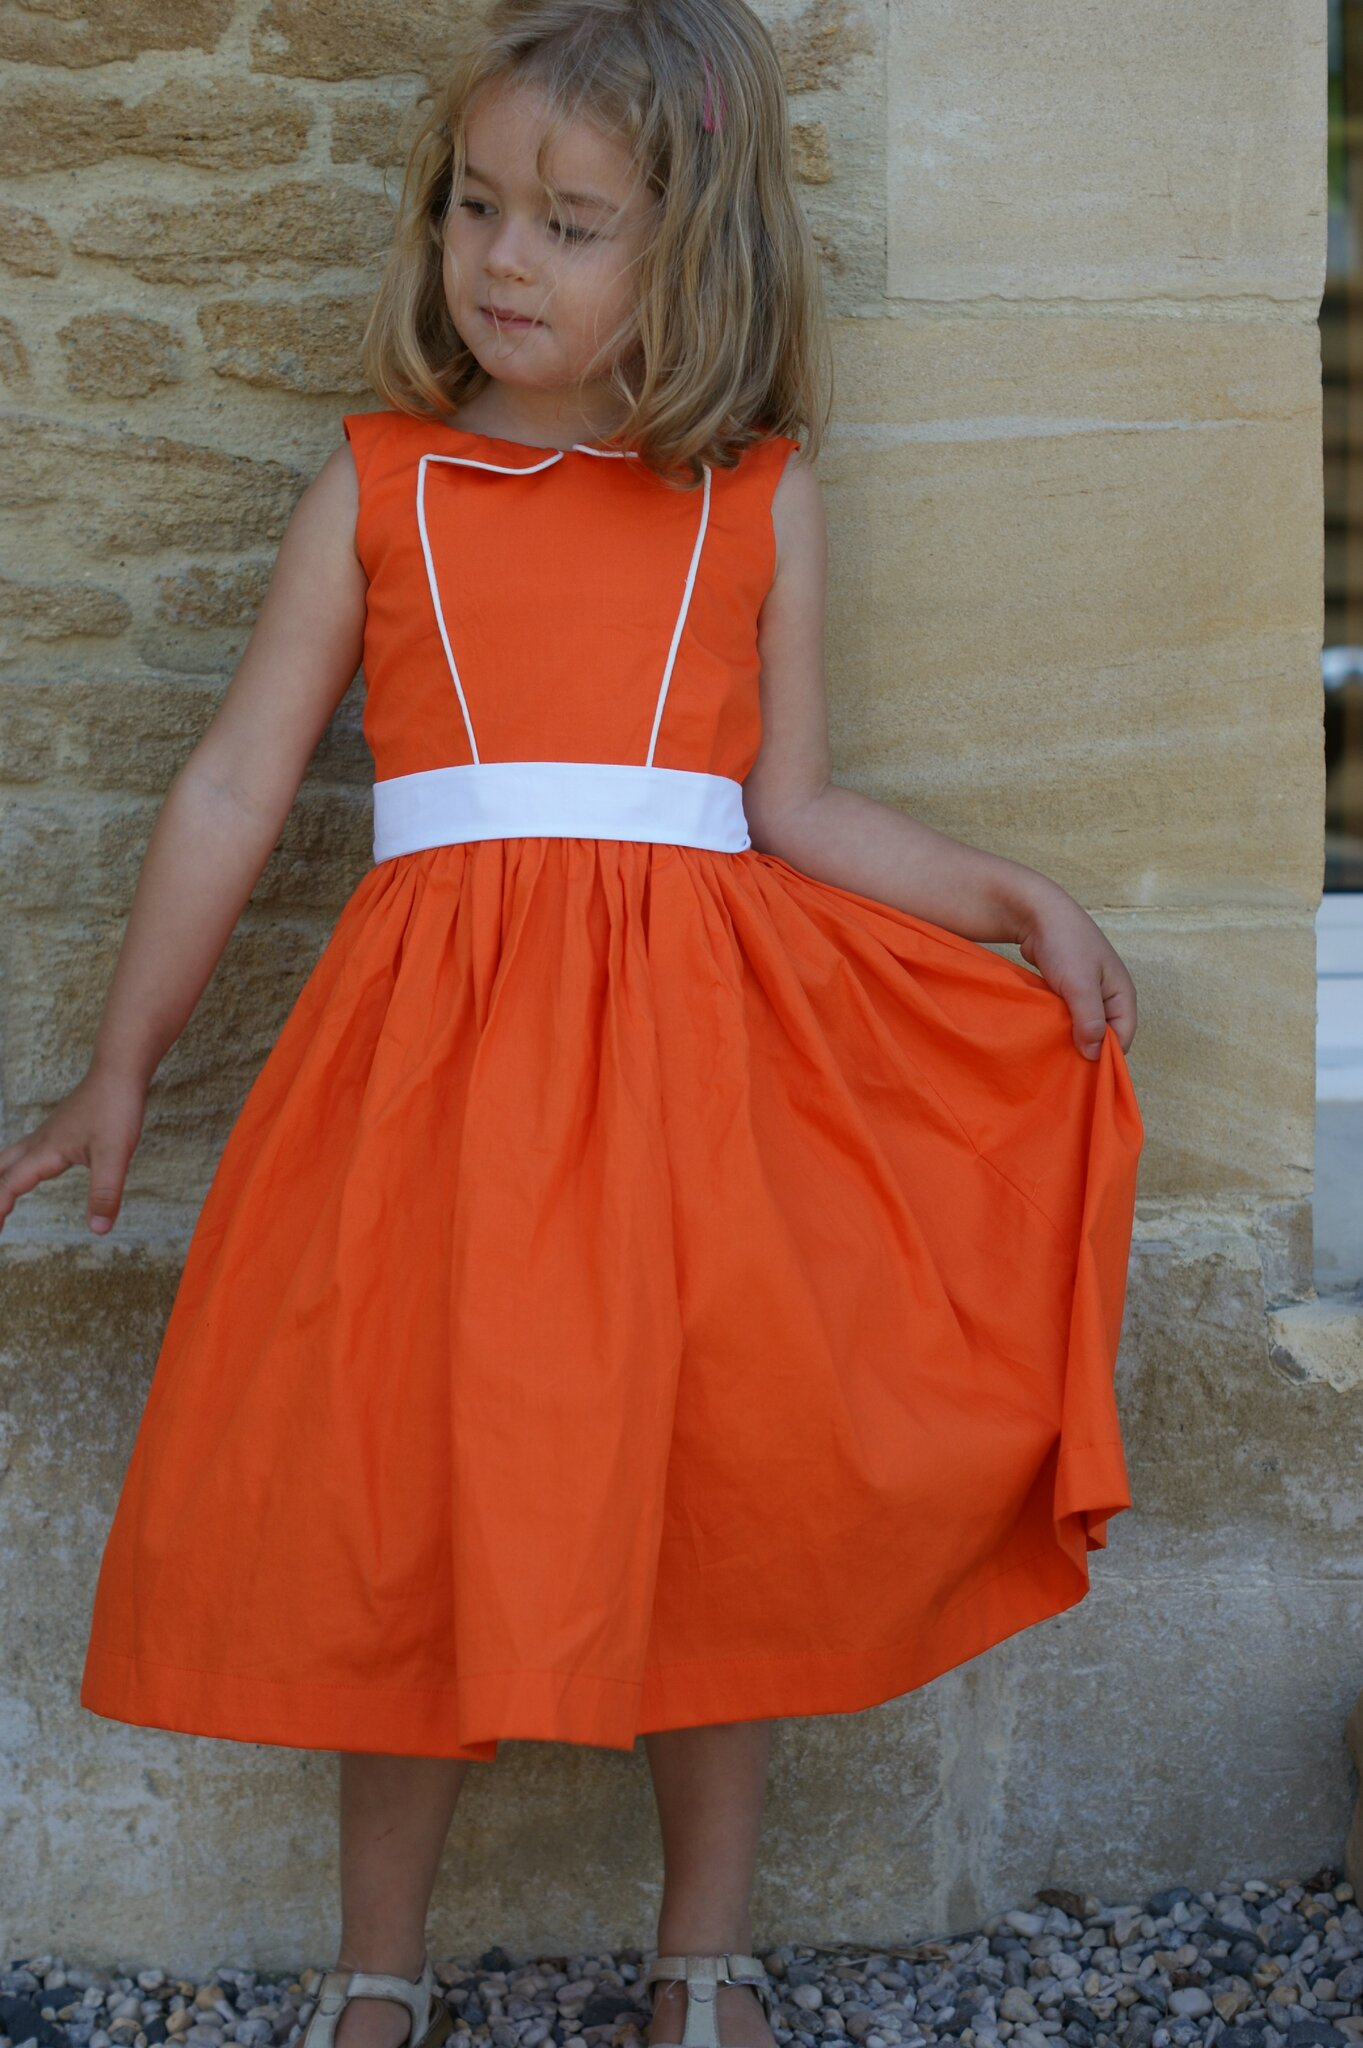 Fille dans la robe orange